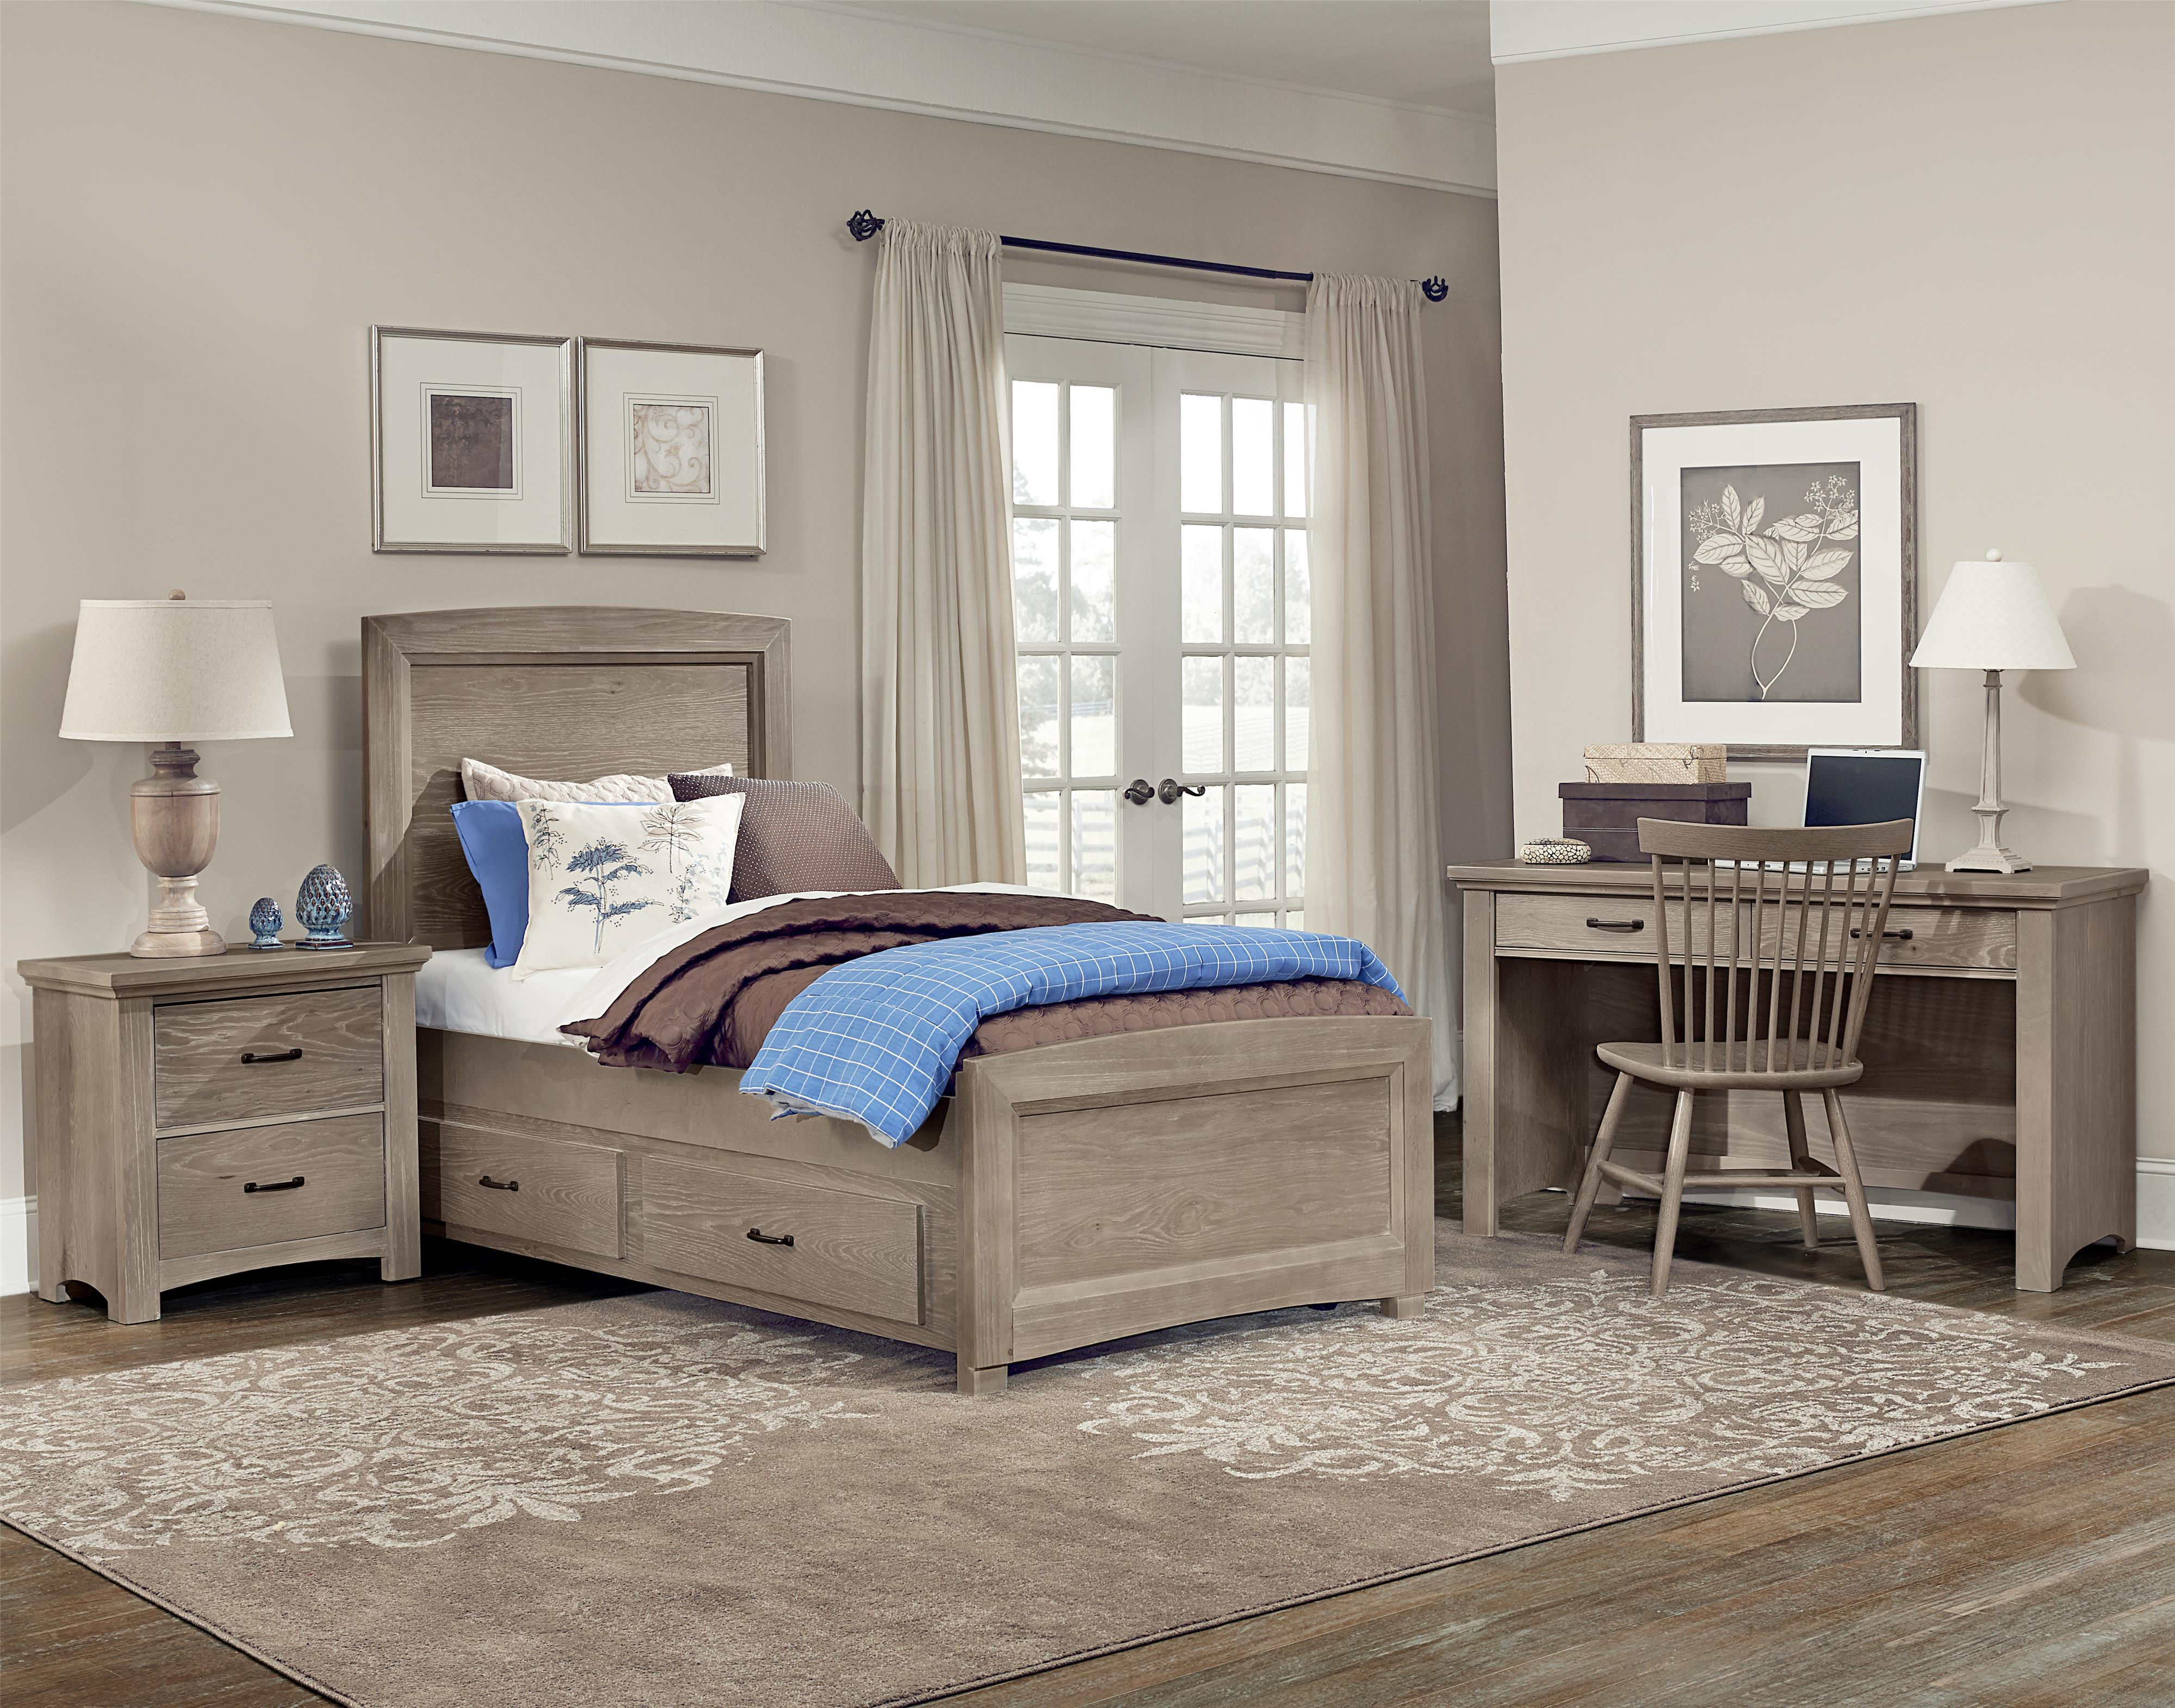 Vaughan Bassett Transitions Twin Bedroom Group - Item Number: BB61 T Bedroom Group 2